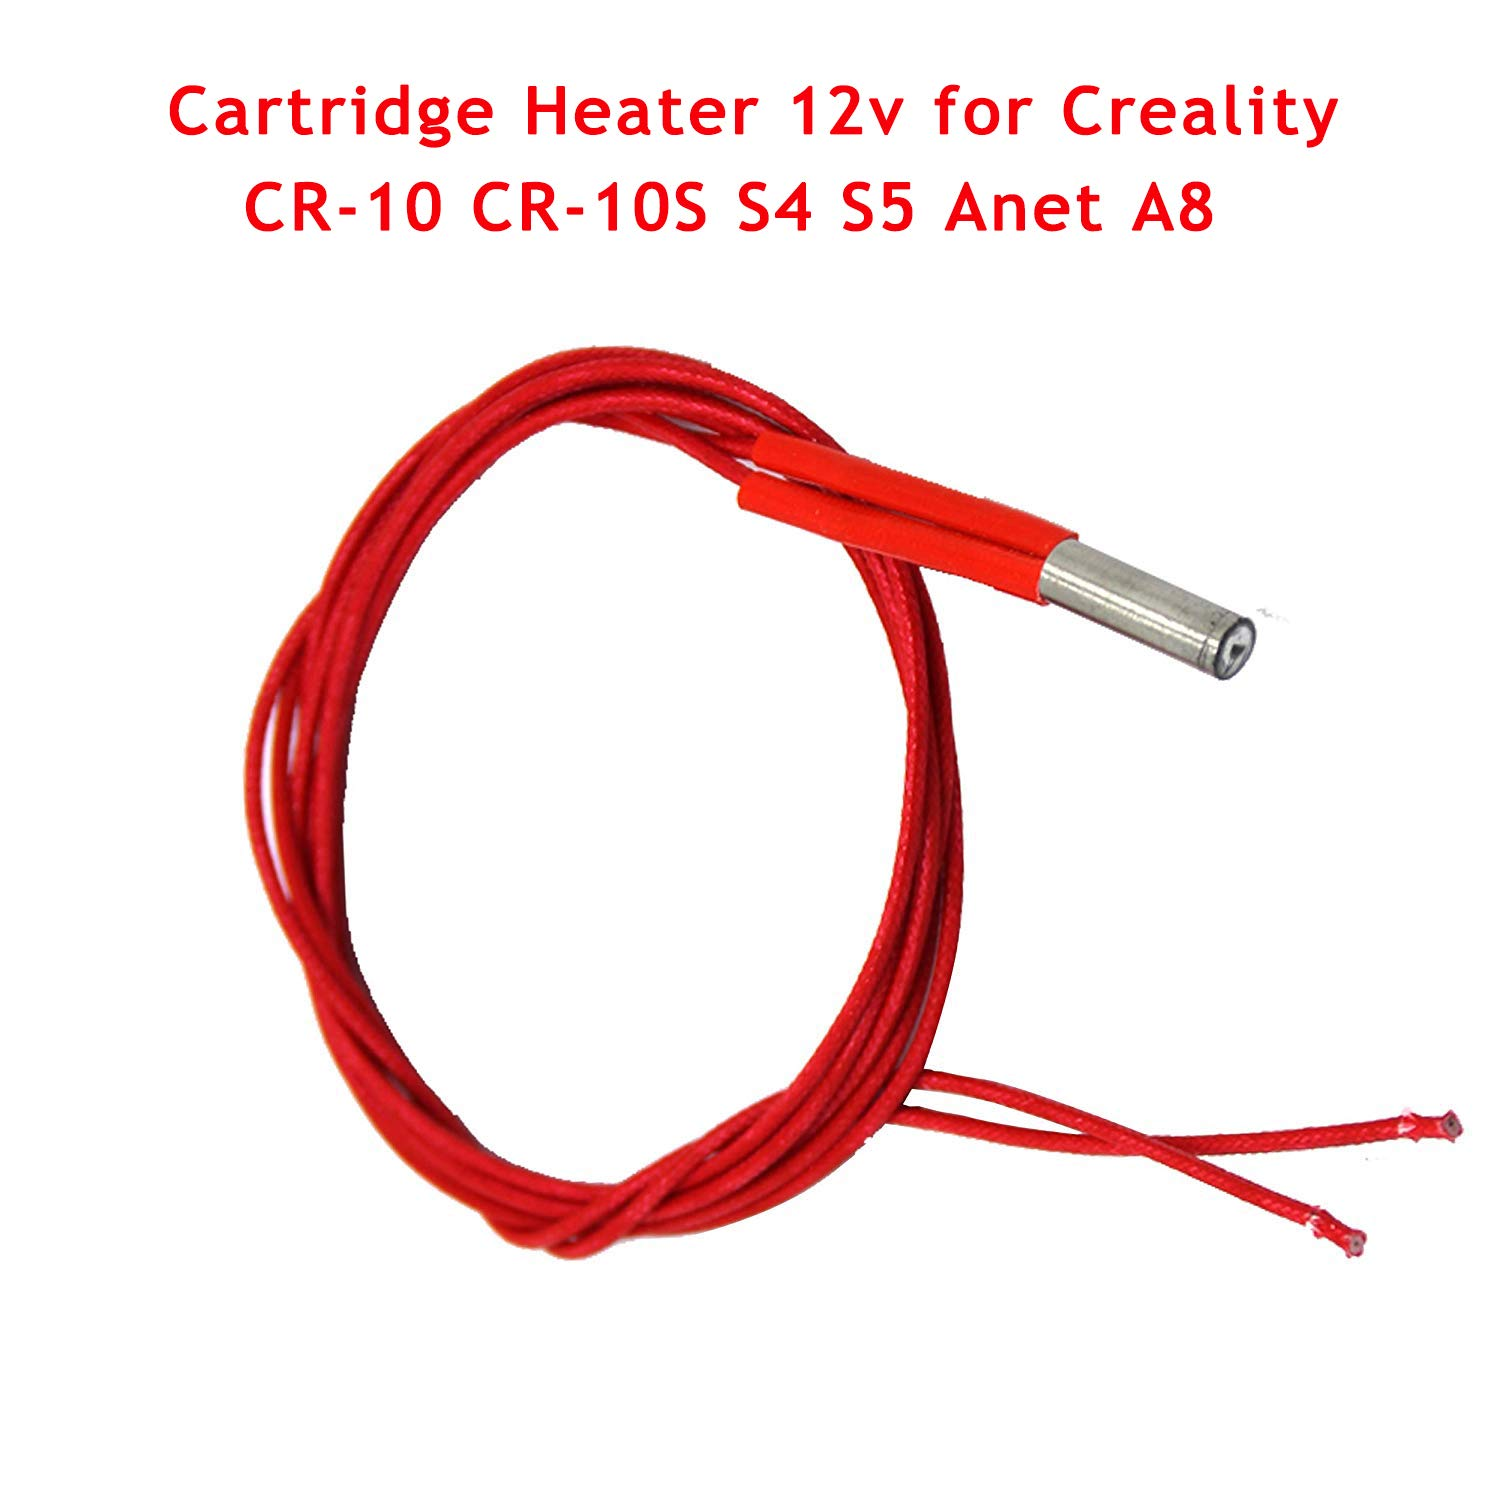 HICTOP Cartridge Heater 12V 40W for Creality CR-10 CR-10S S4 S5 Anet A8 3D Printer Prusa Mendel Heater Tube (Pack of 3)